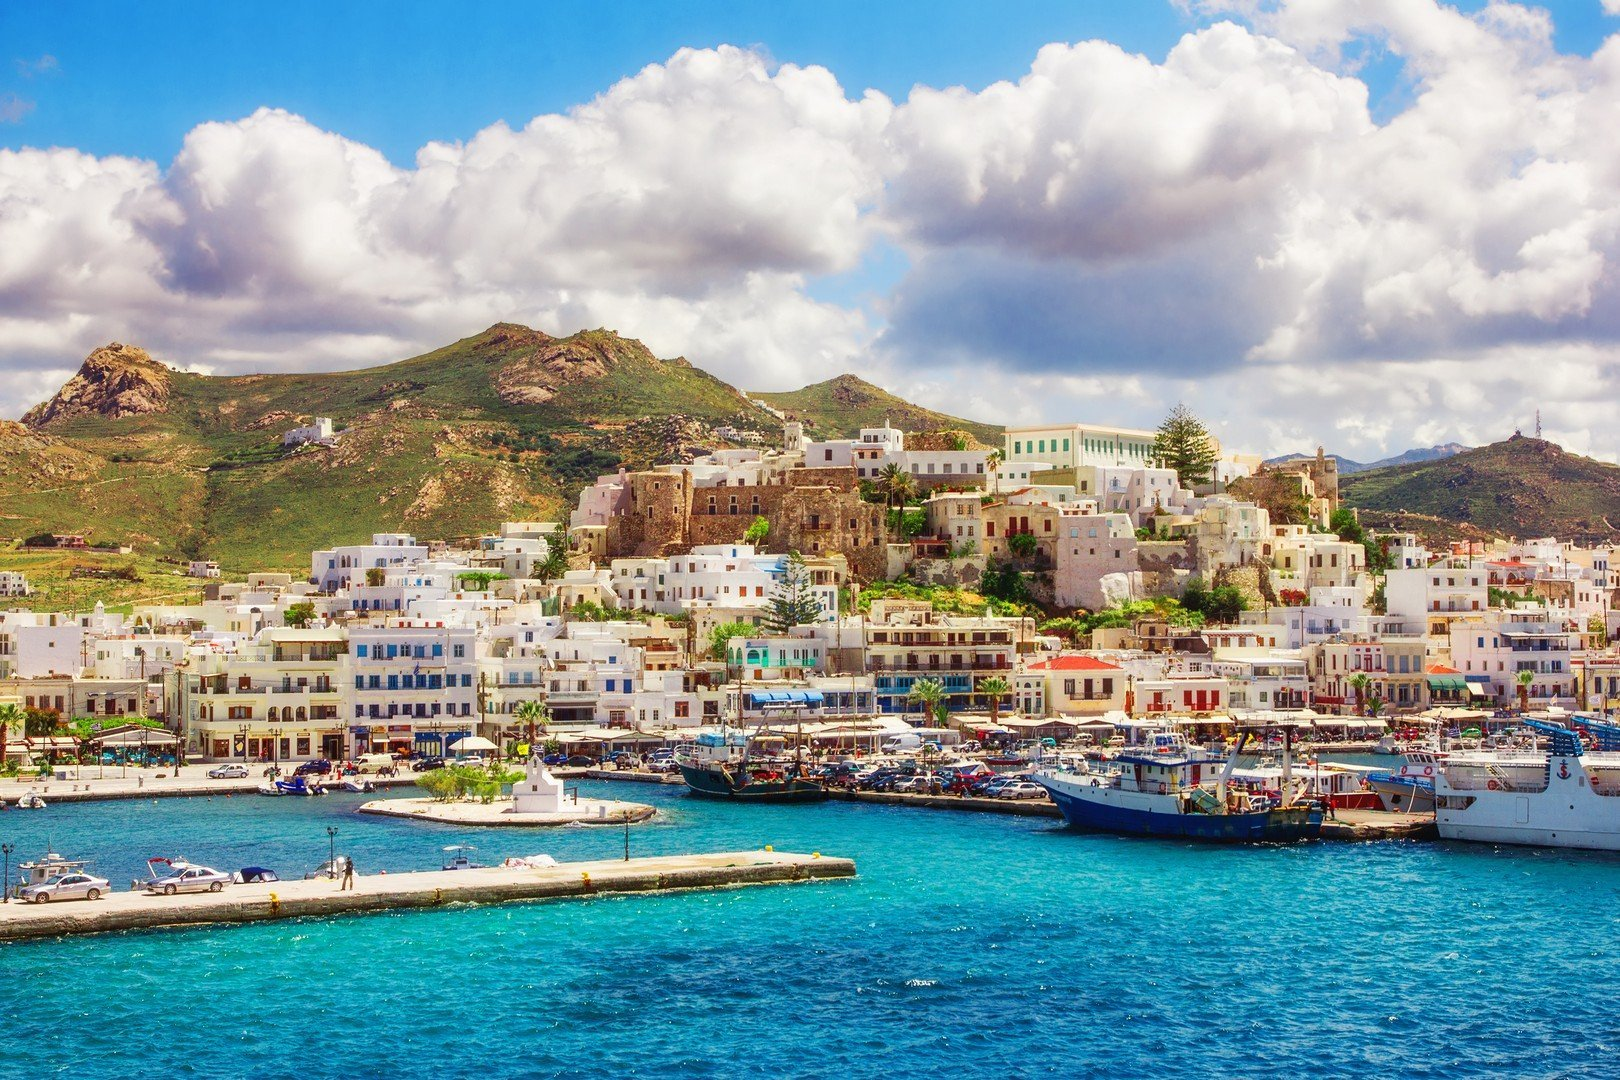 Port on the island of Naxos, Greece shutterstock_188996729